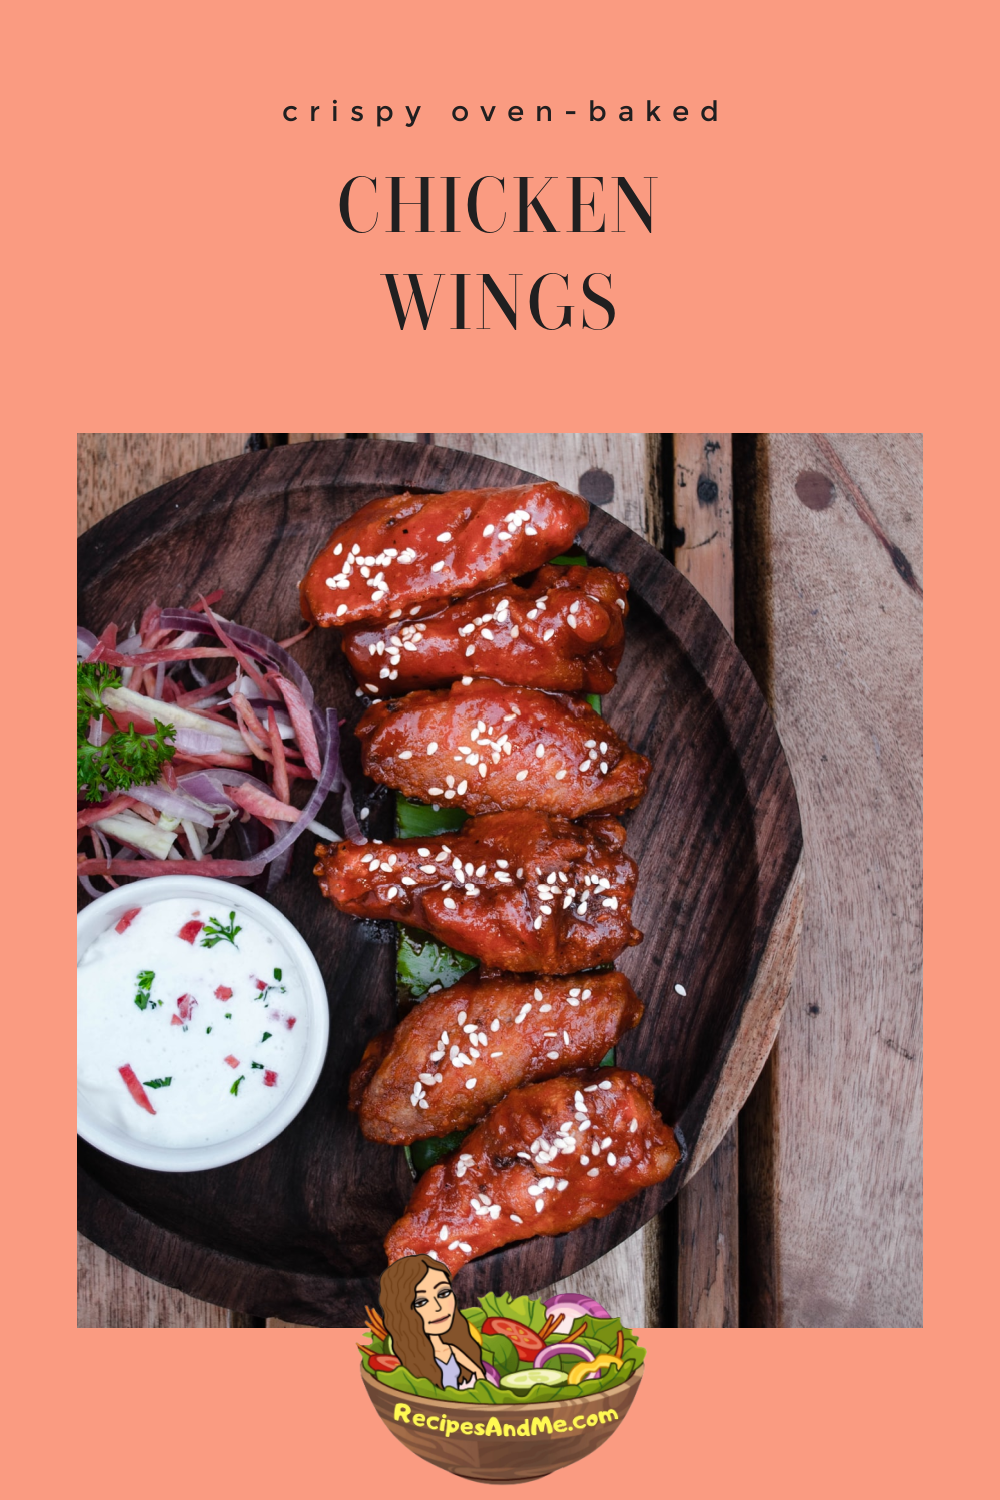 Oven baked chicken wings. #ChickenWings #OvenBakedChickenWings #HomemadeChickenWings #ChickenWingsRecipe